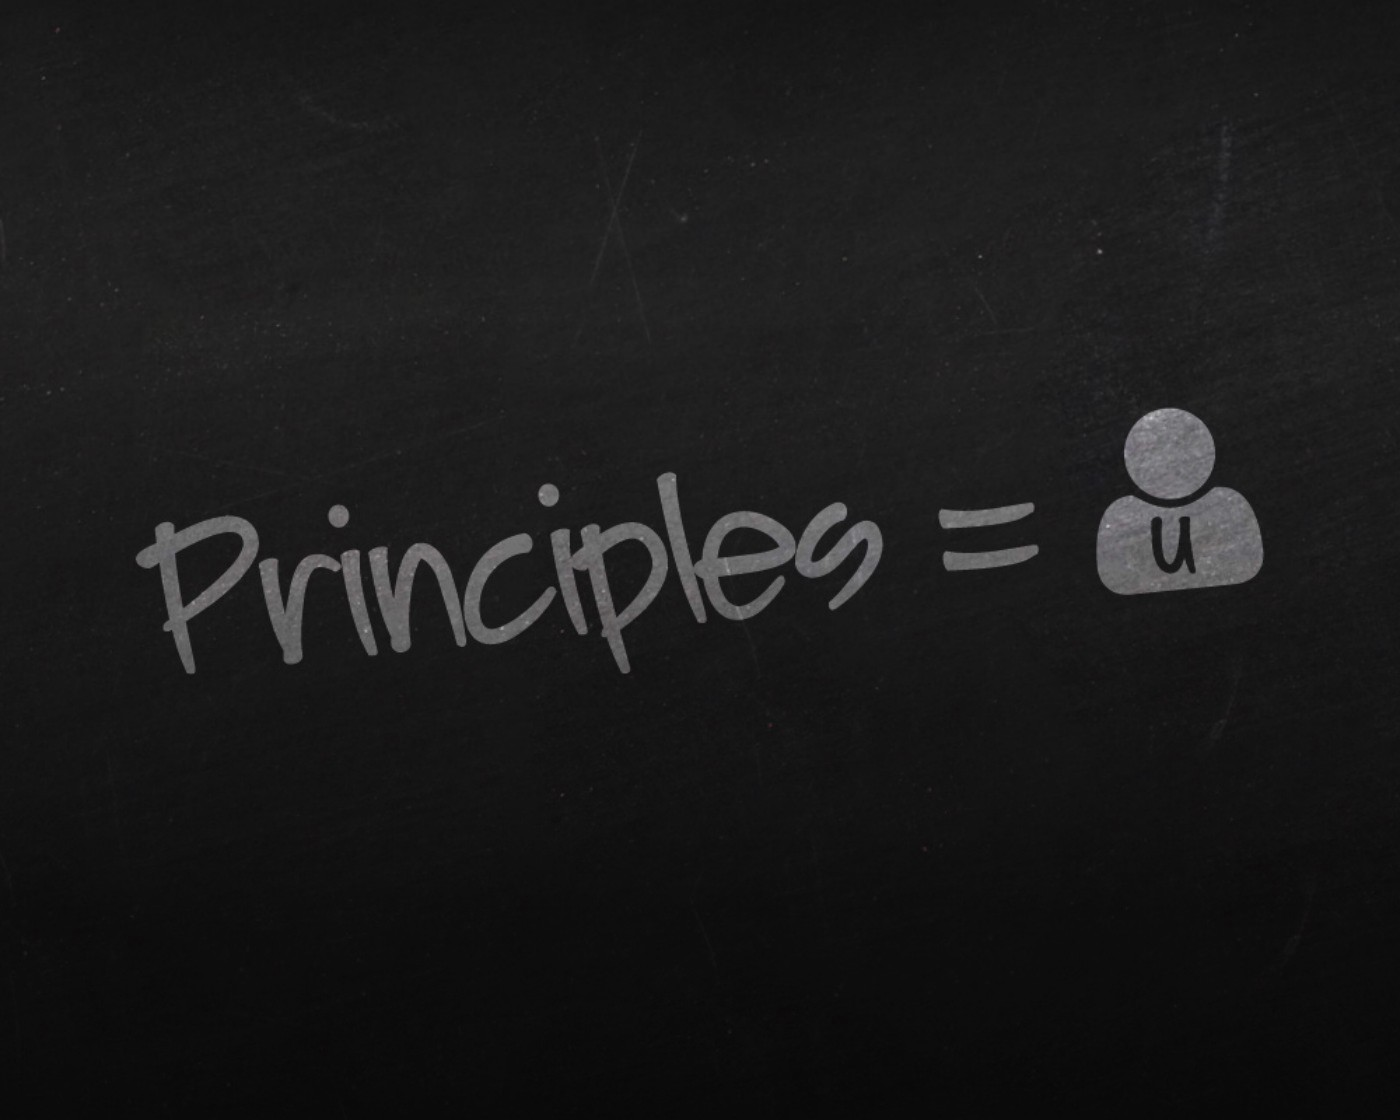 It's your principles that define you